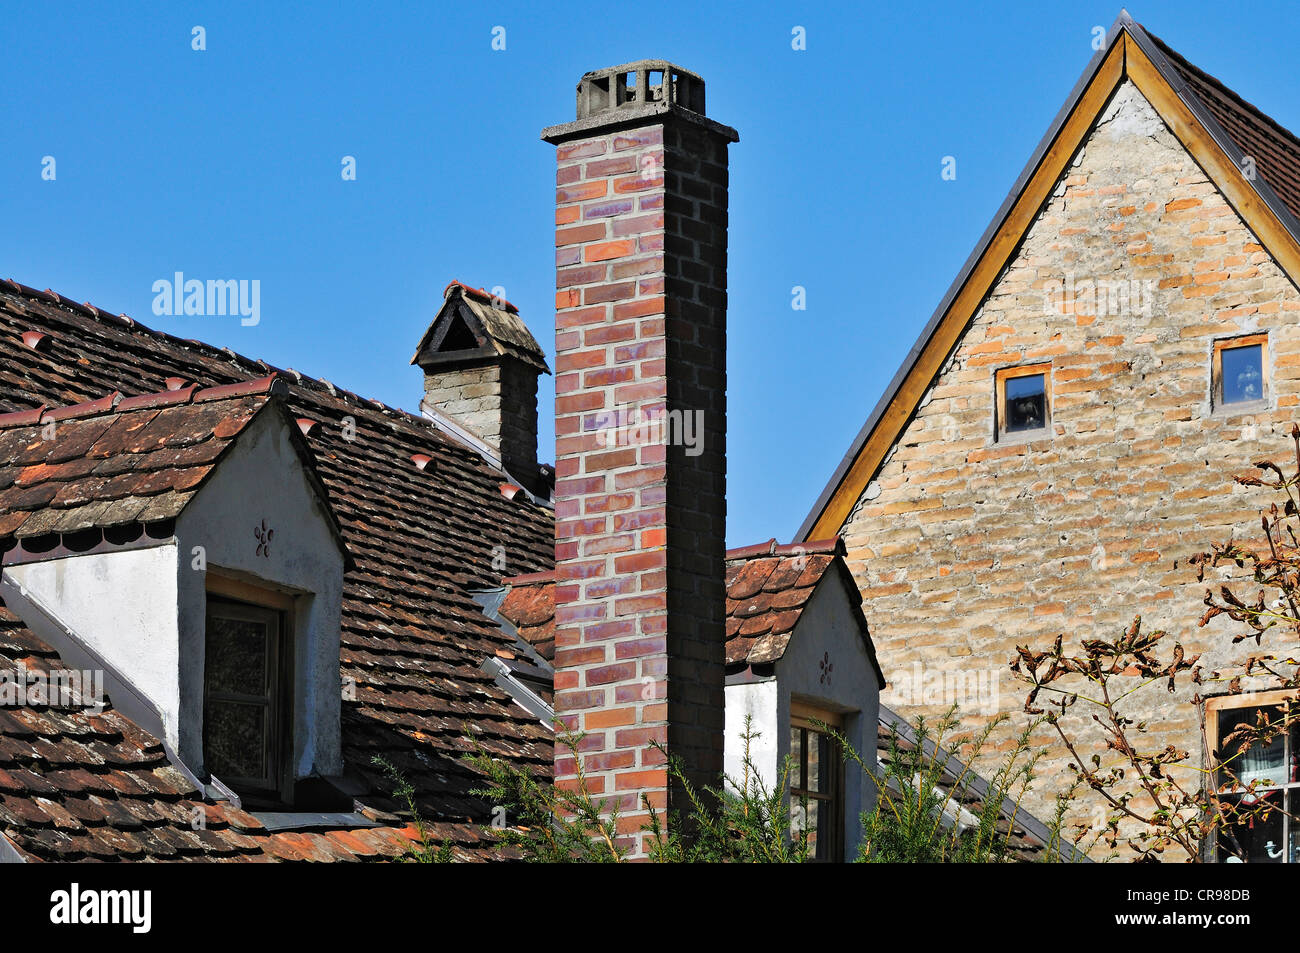 Chimneys and dormers, Landsberg am Lech, Bavaria, Germany, Europe - Stock Image